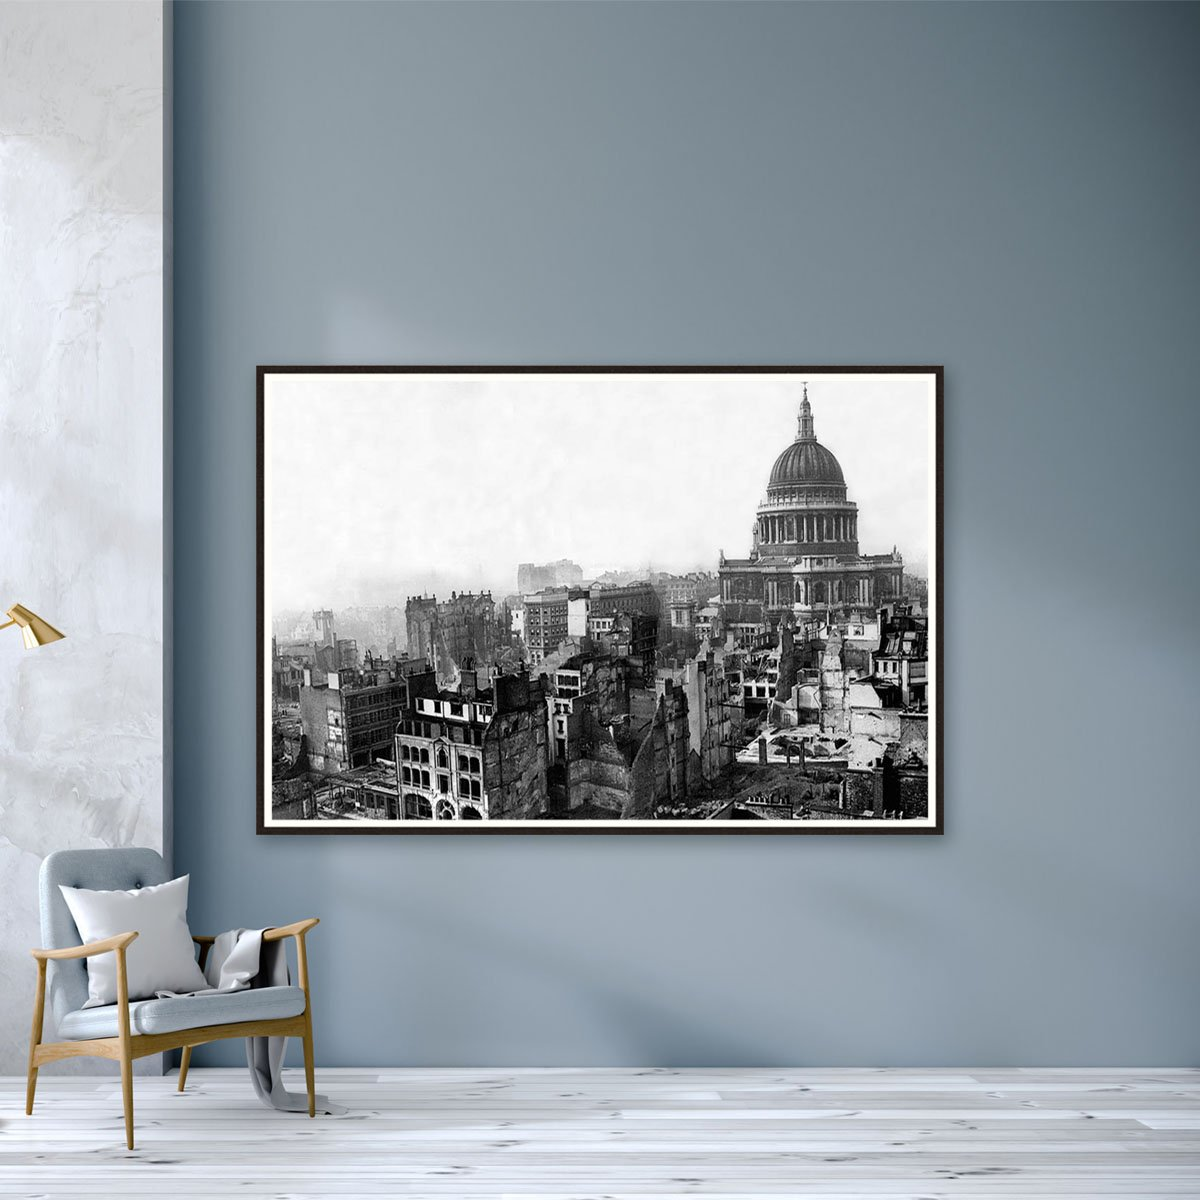 St Pauls Cathedral in the ruins by Frank Rust